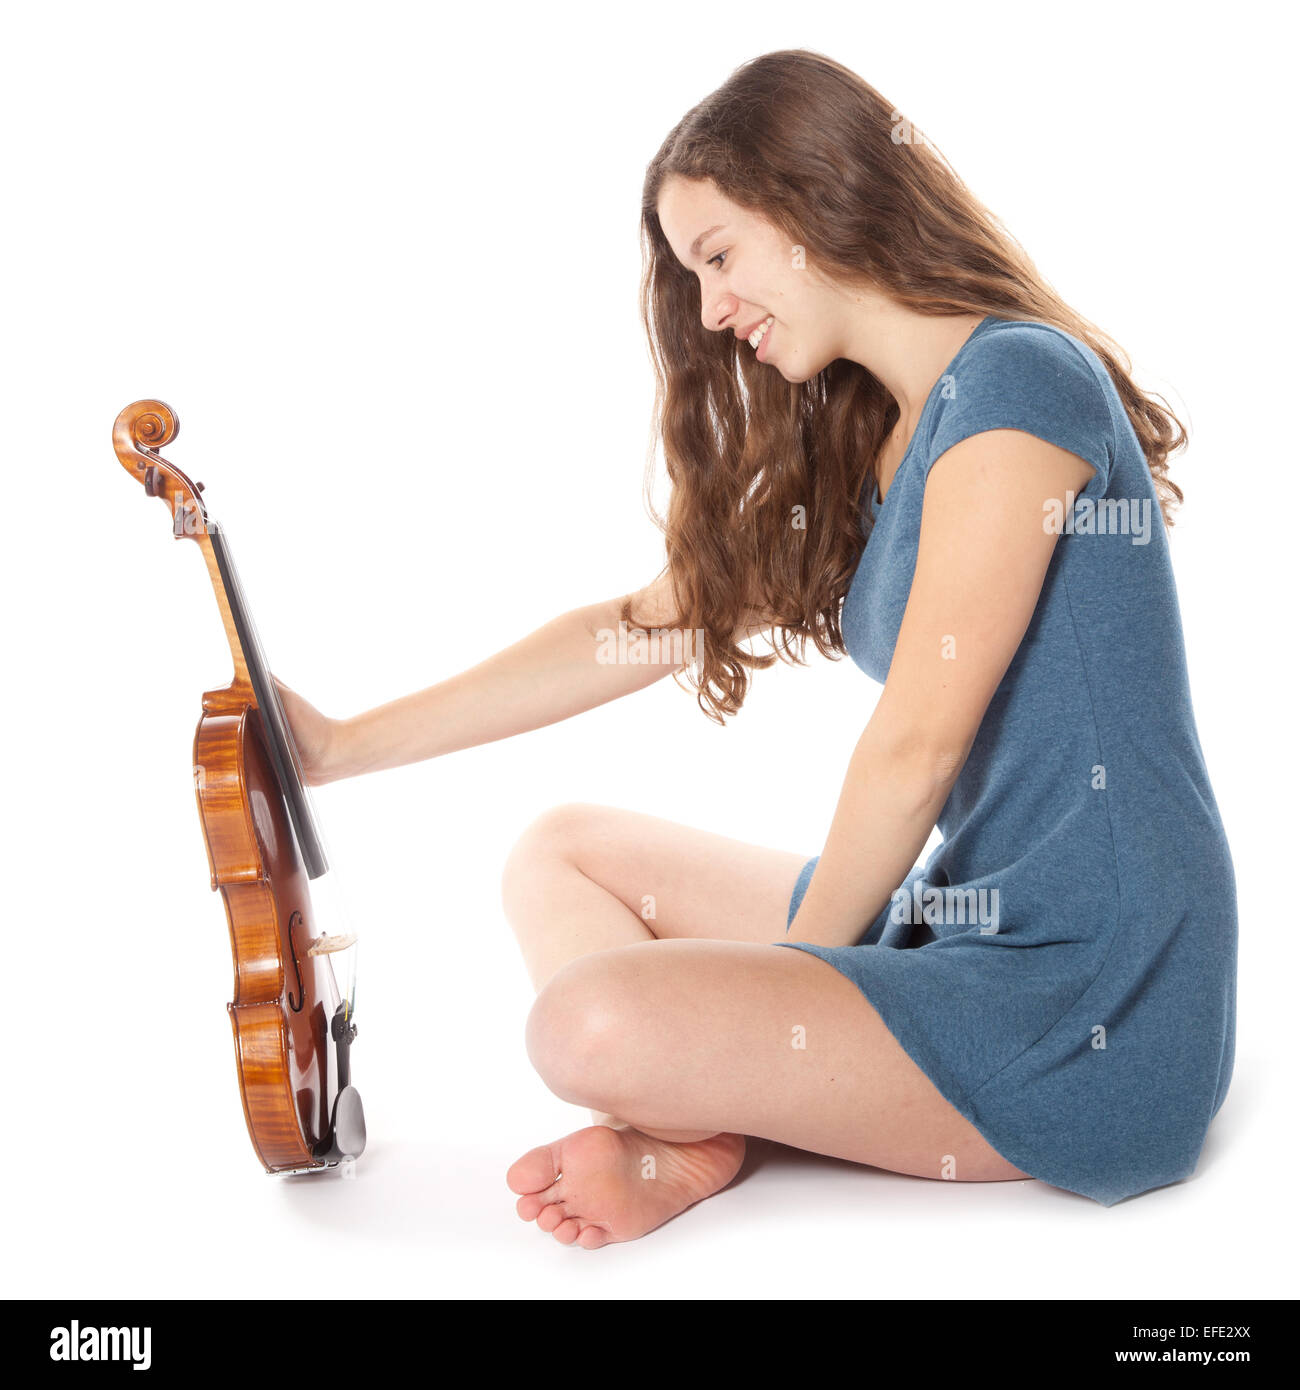 teen brunette wearing mini dress sits with violin in studio against white background - Stock Image